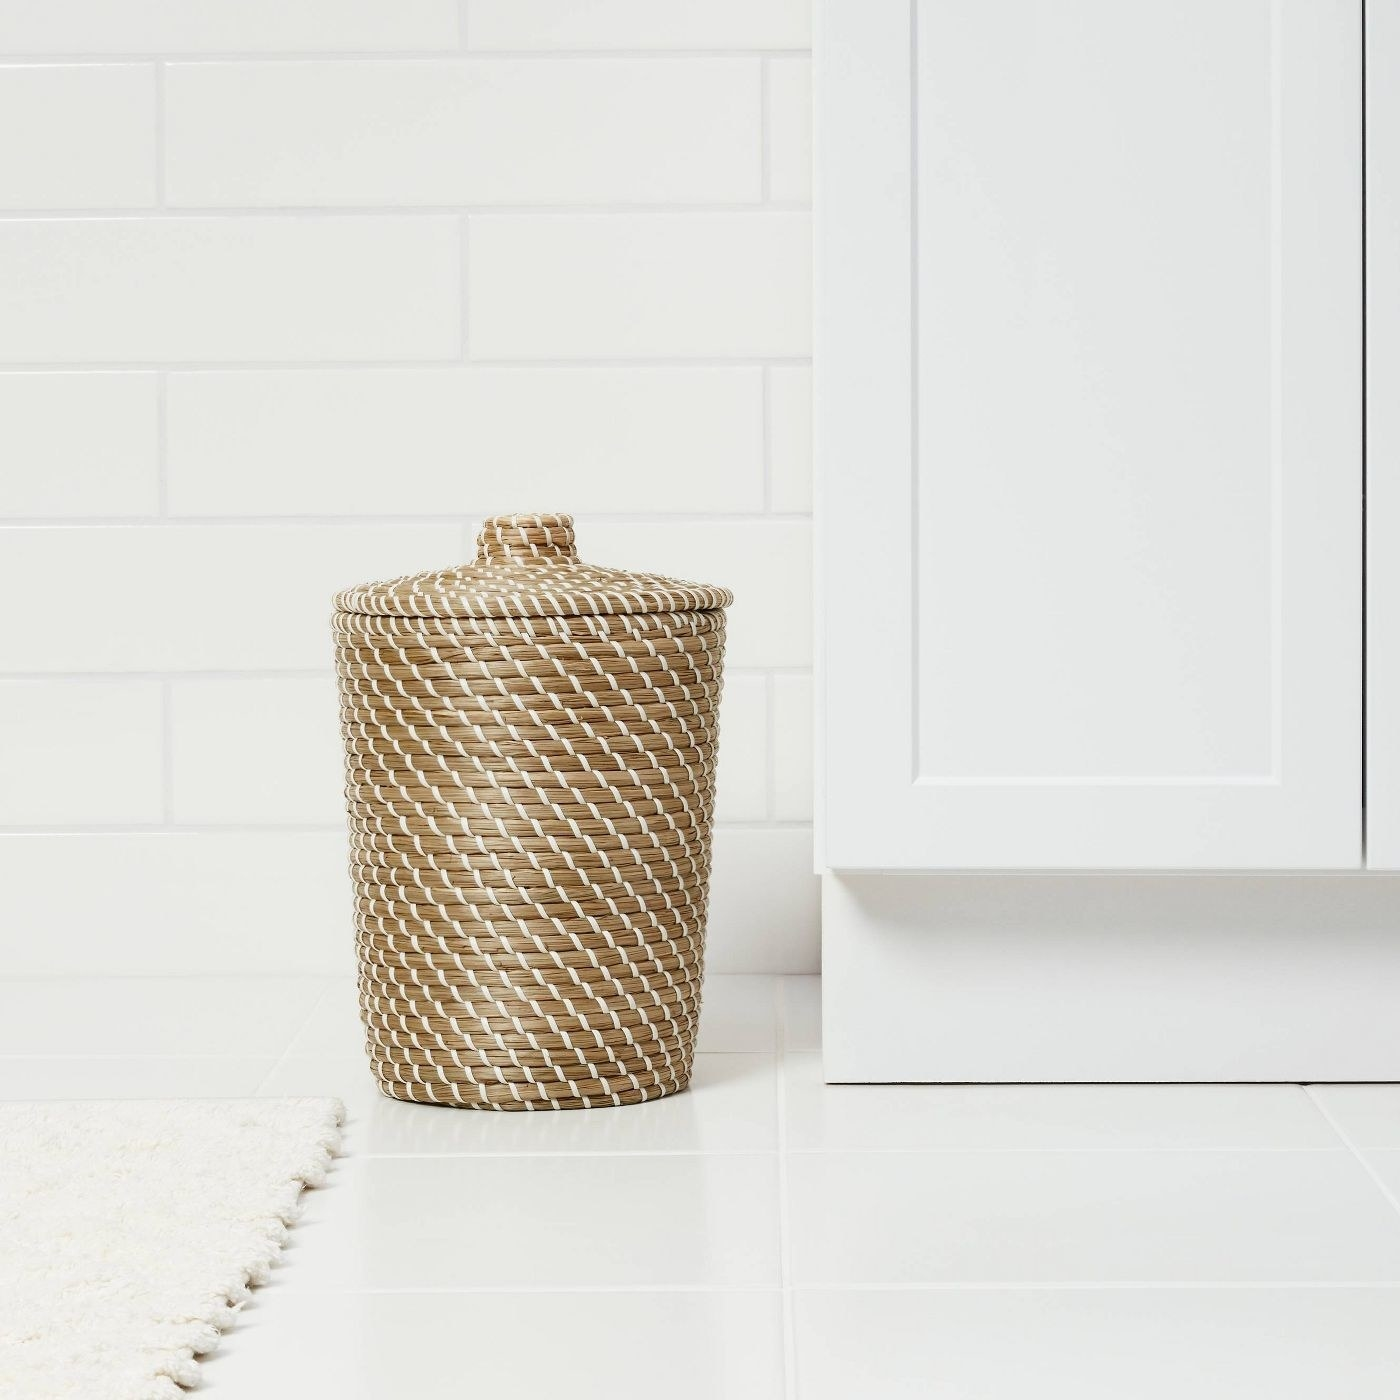 The woven wastebasket, which is made from strands of light brown and white fiber, and has a top with a small handle